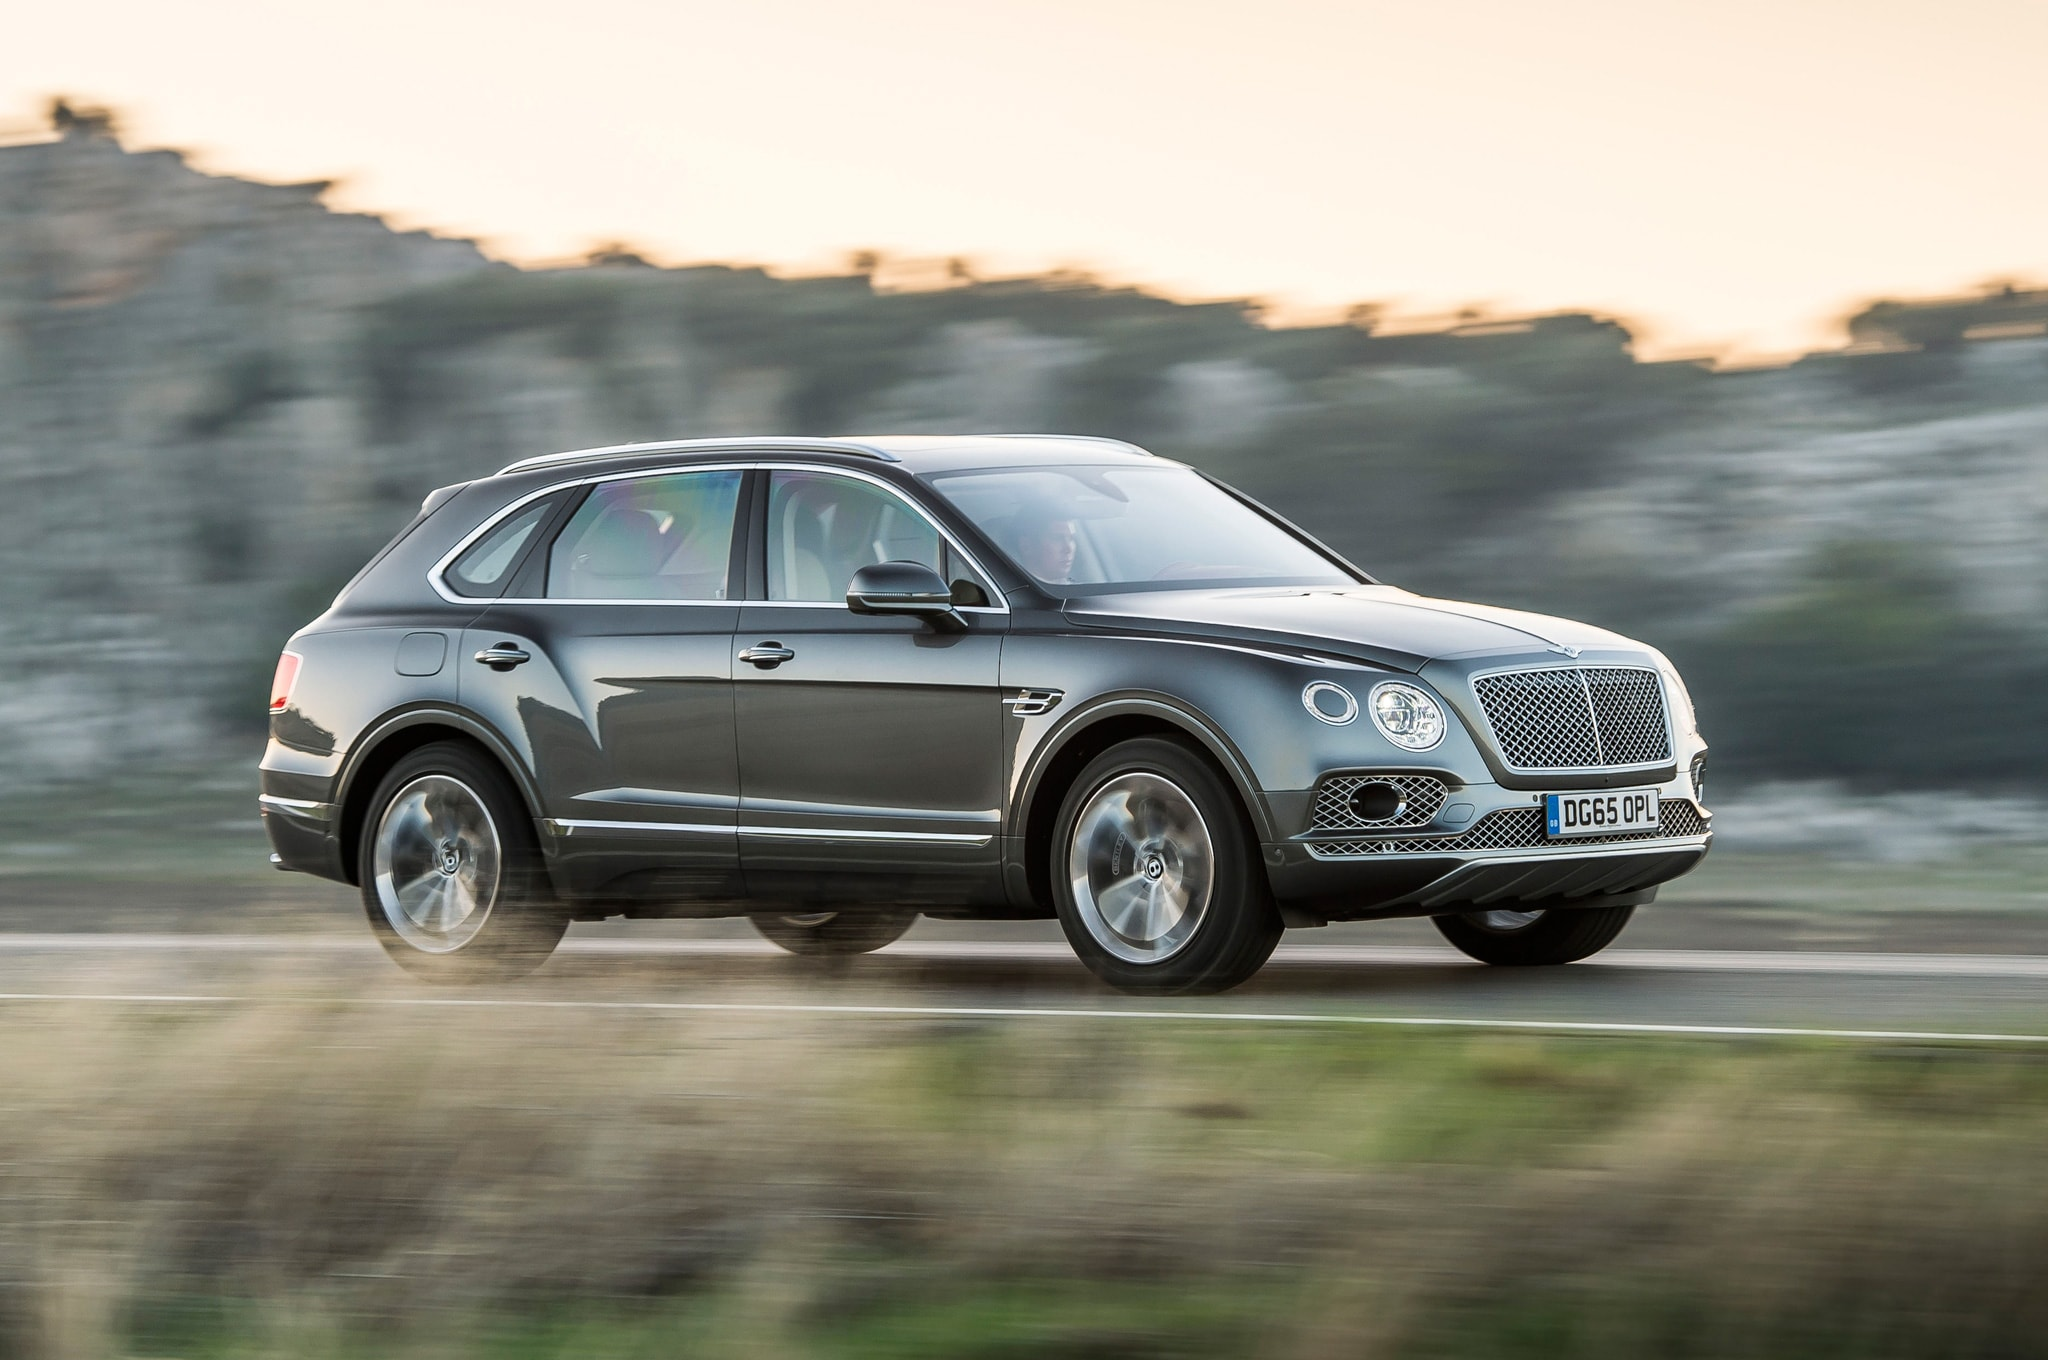 Bentley Bentayga Widescreen for desktop